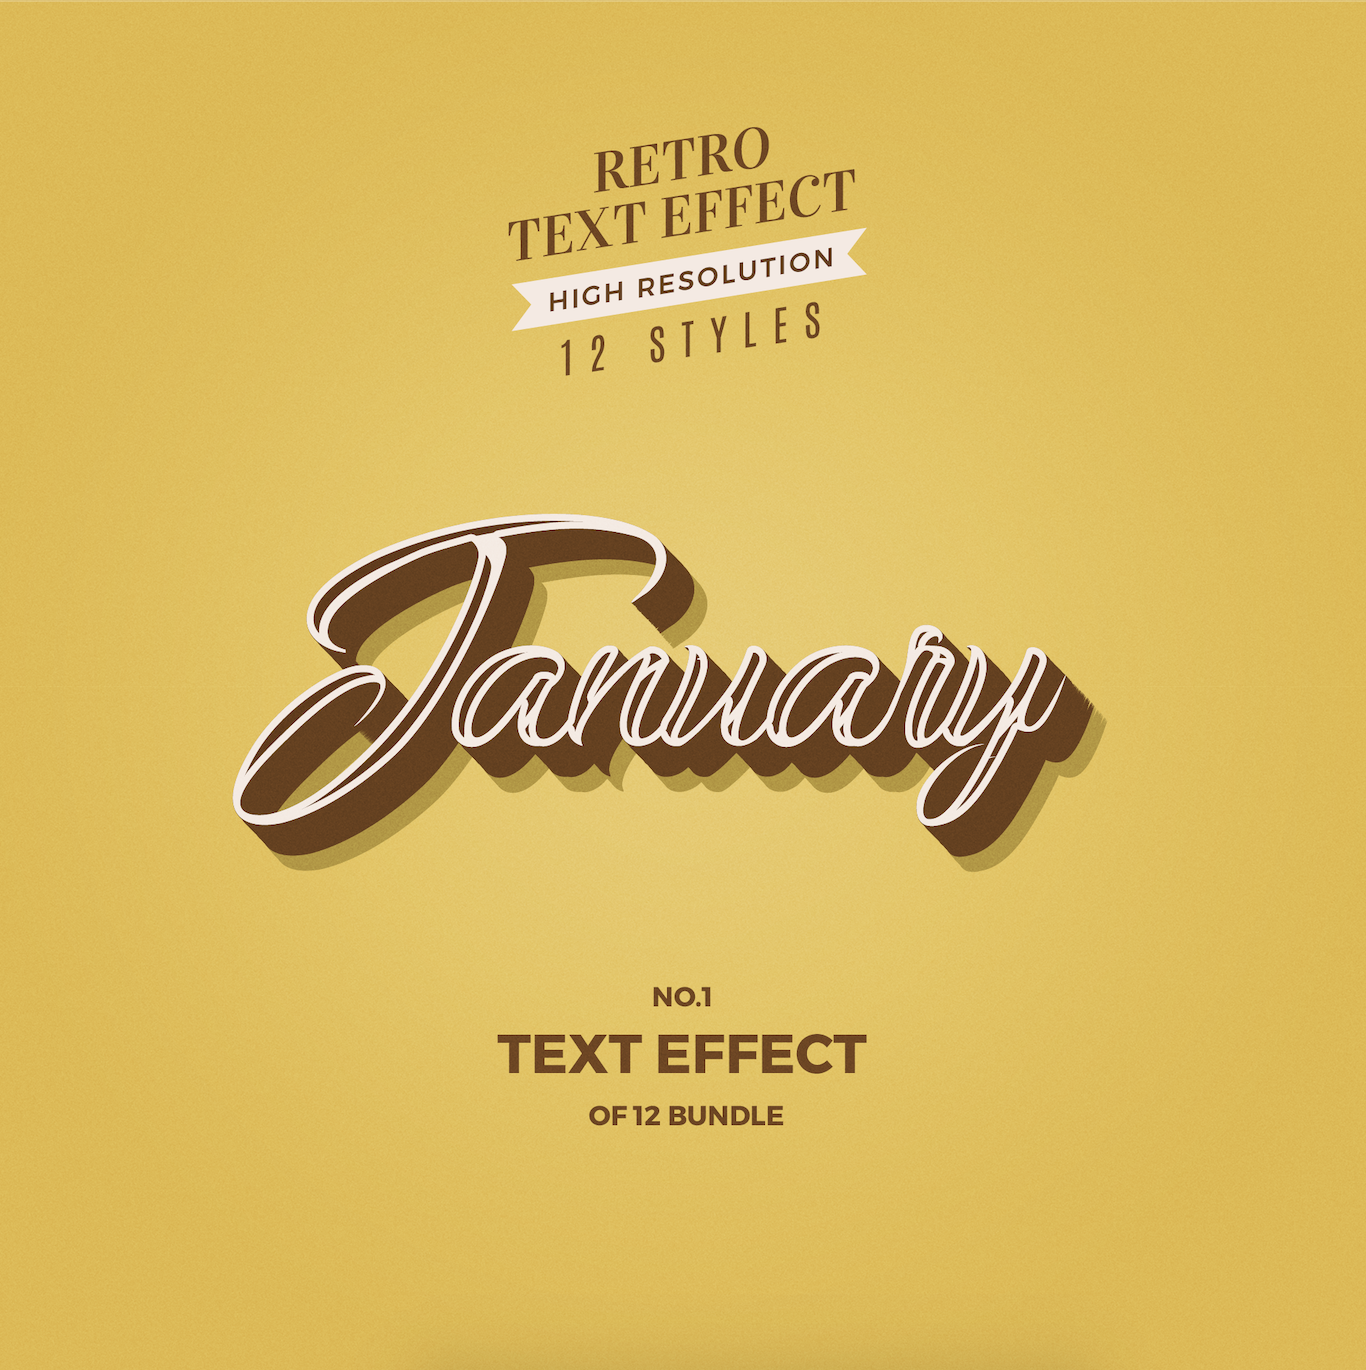 Months Of The Year Retro Text Effects